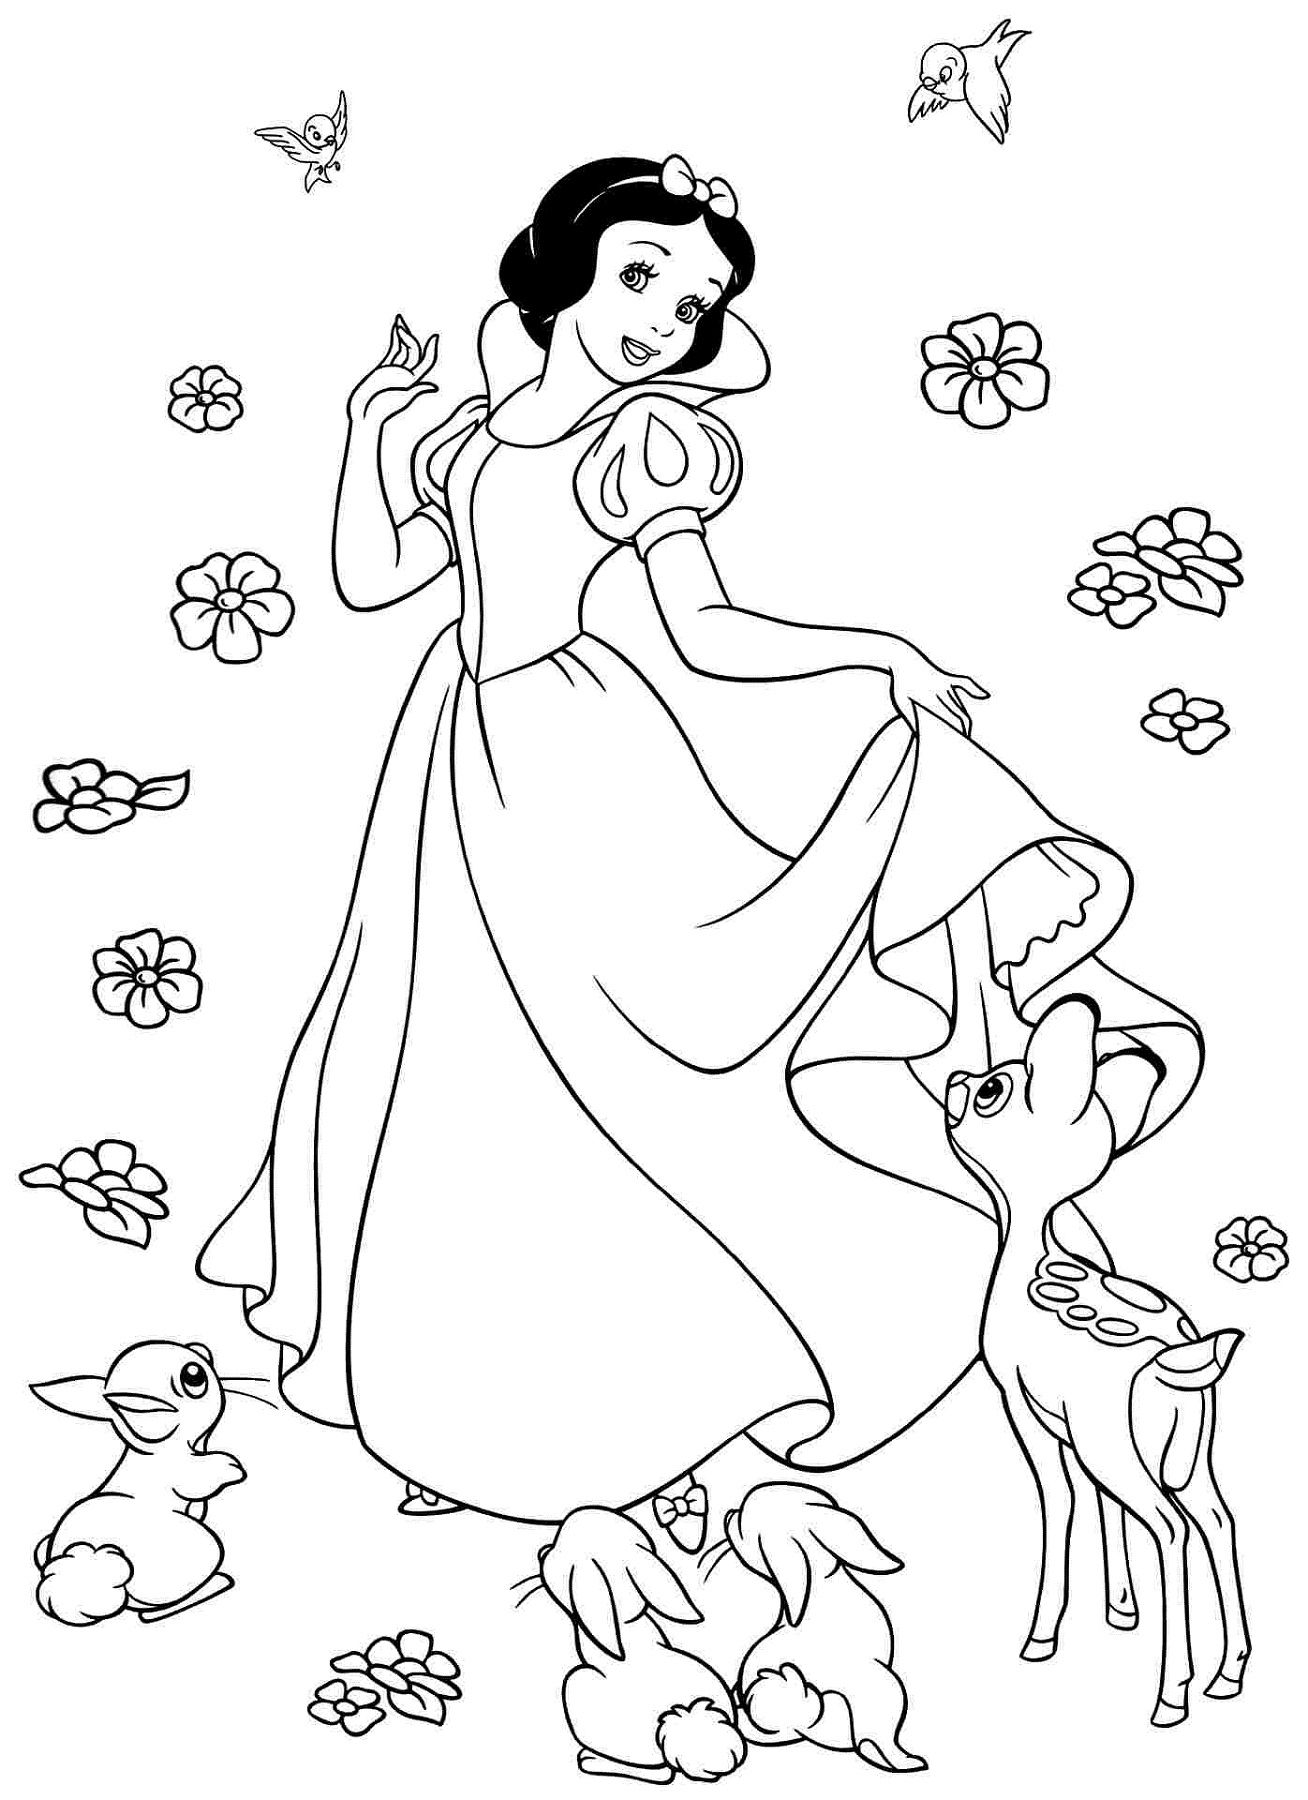 Snow White Color Pages to Print | Activity Shelter | Coloring Pages ...